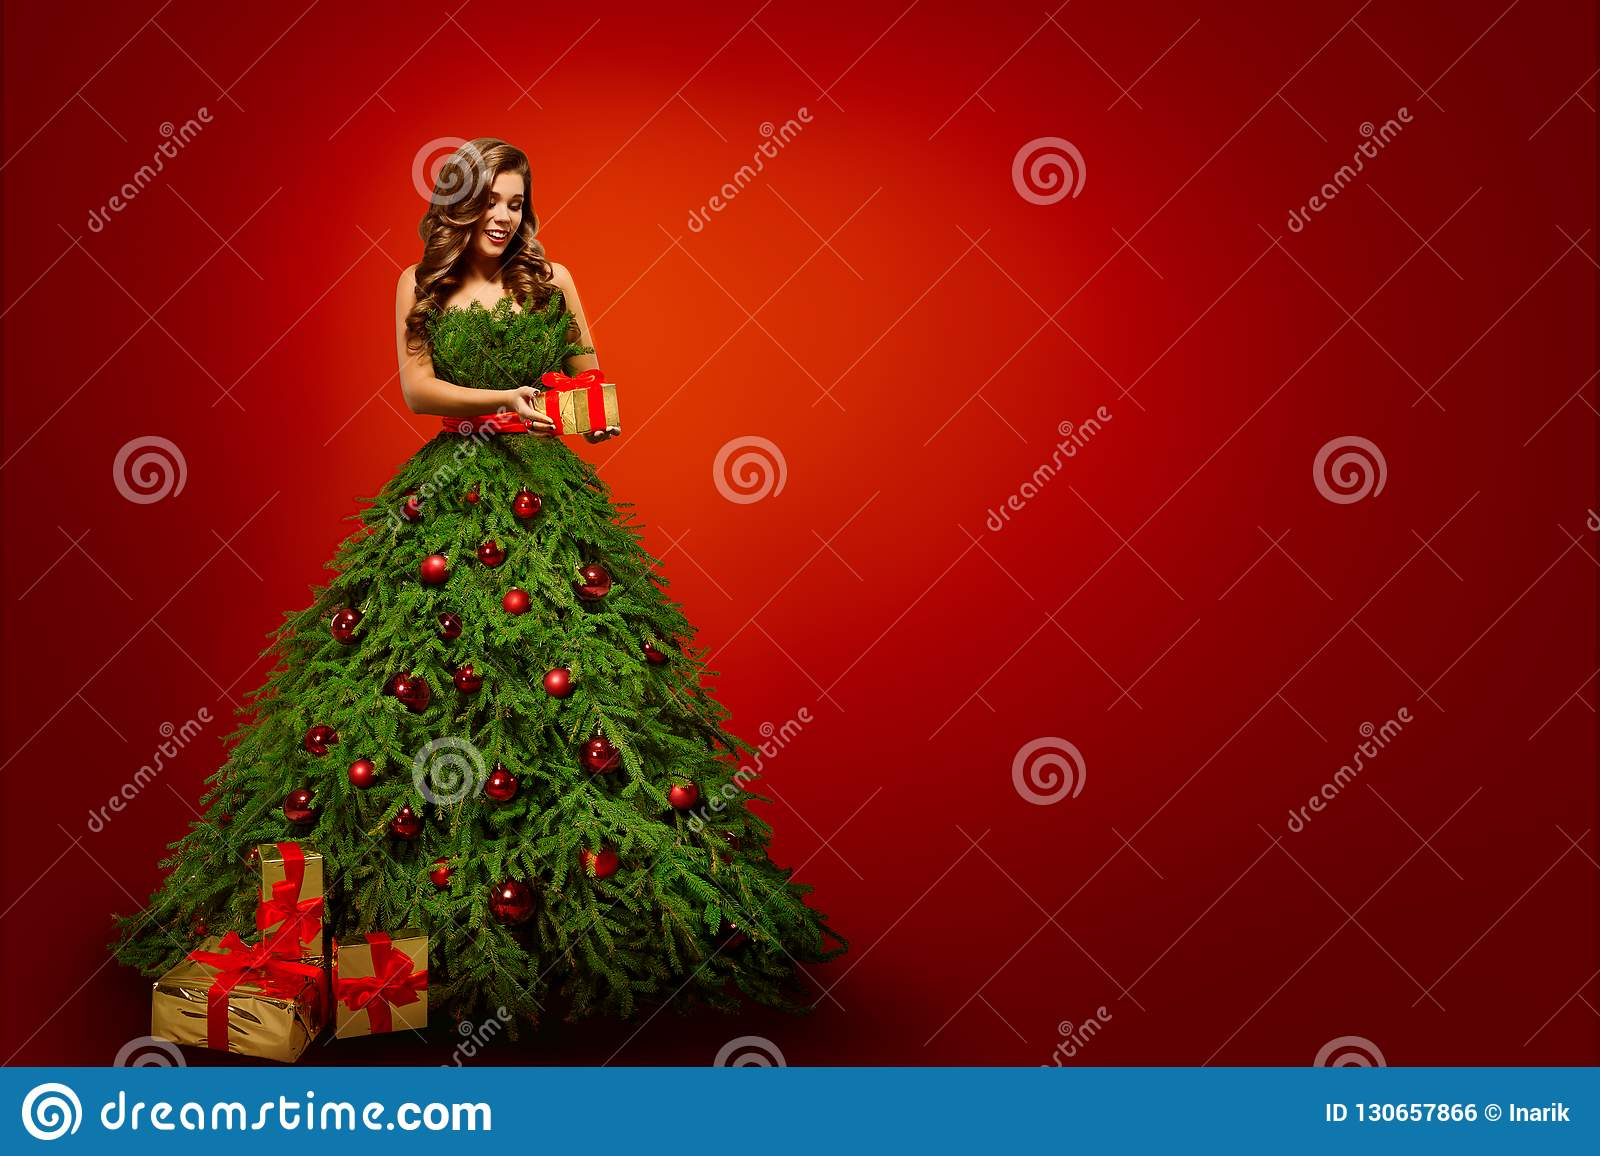 Fashion Woman in Christmas Tree Dress, Model hold Xmas Present